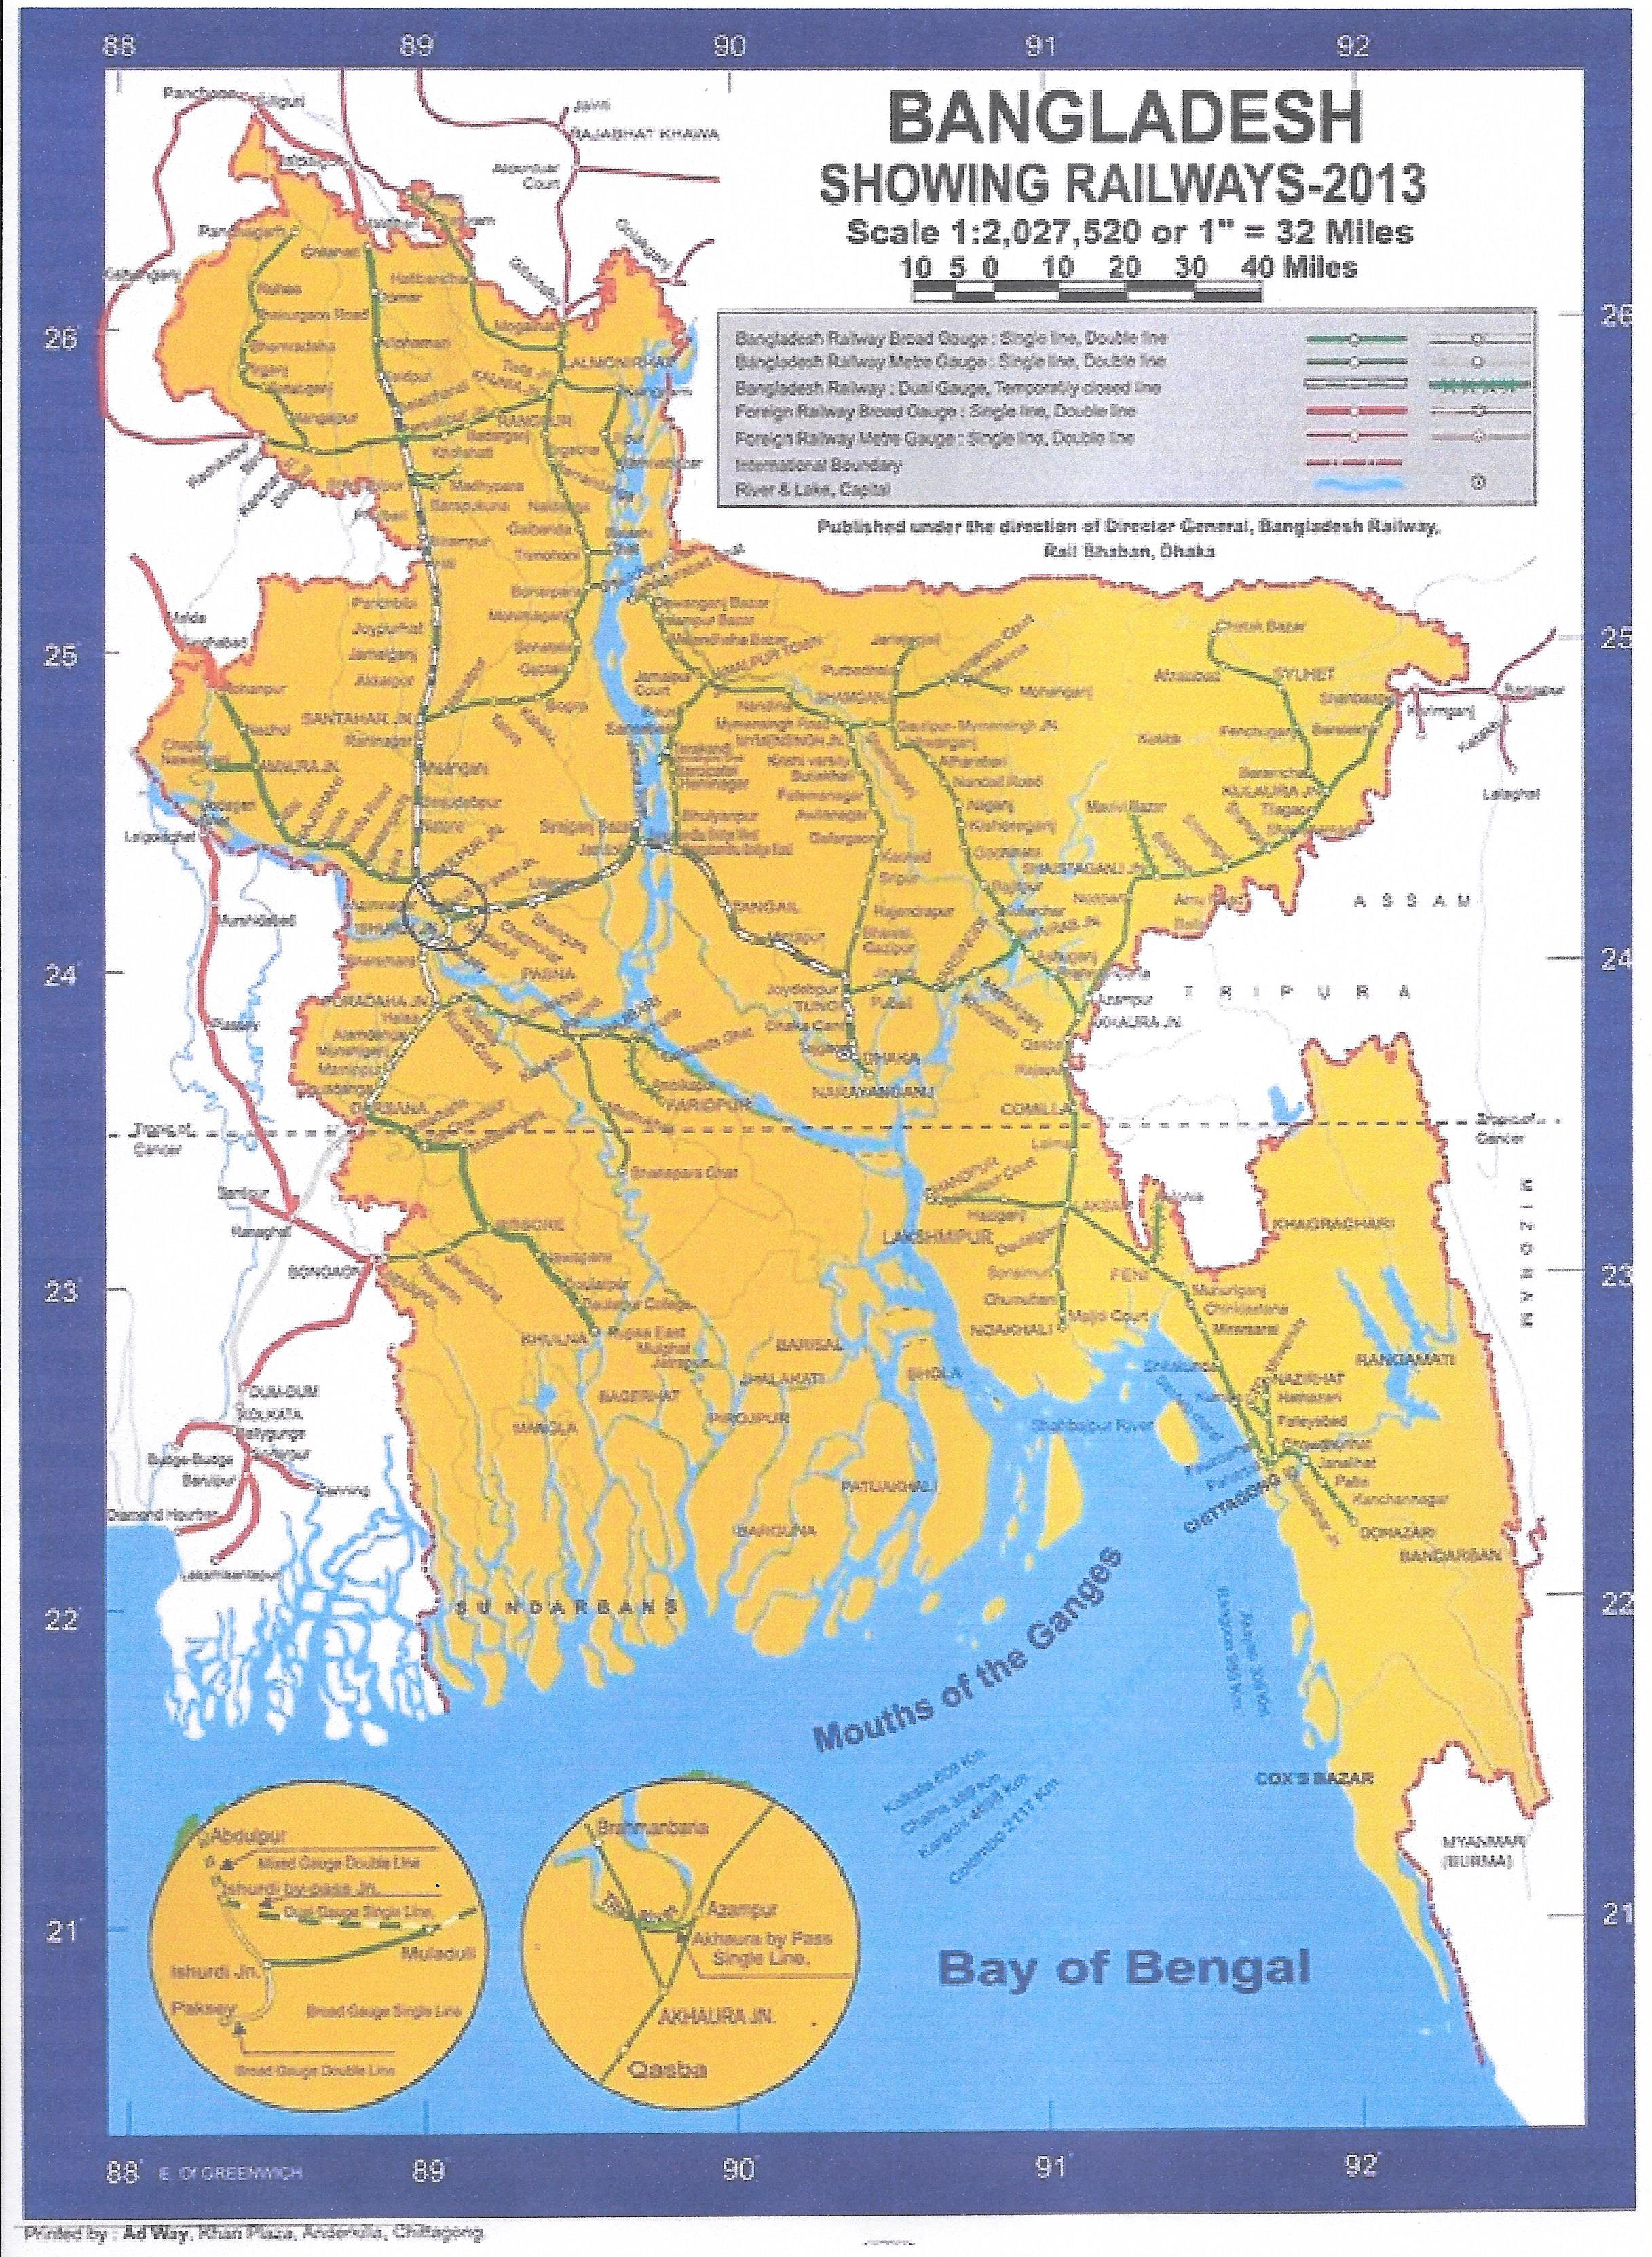 BD Rly Off Map-2013 001